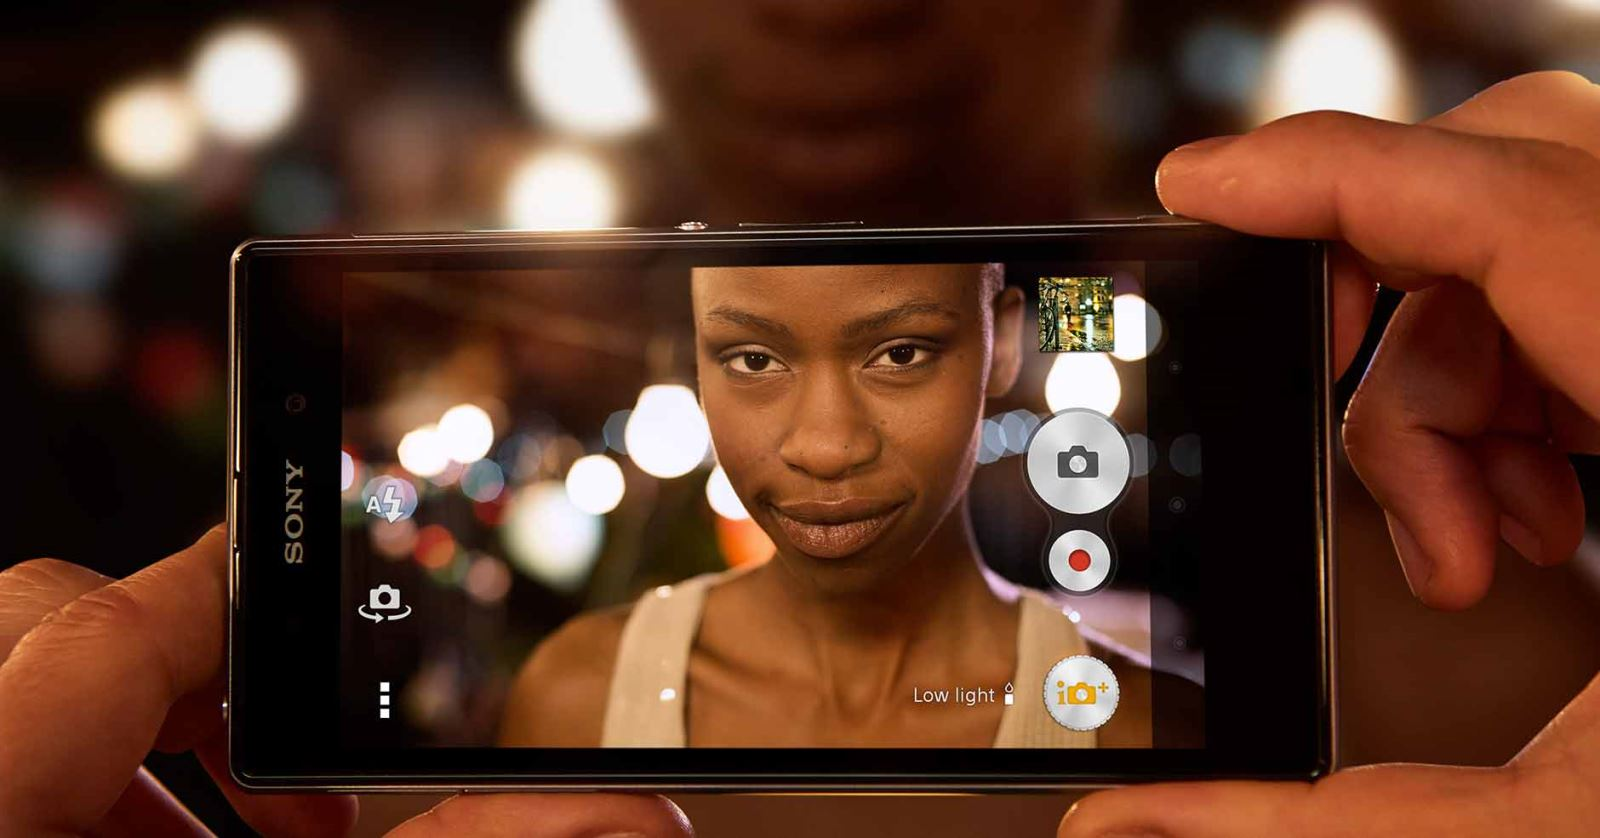 xperia-z1-features-camera-examples-lowlight-1880x985